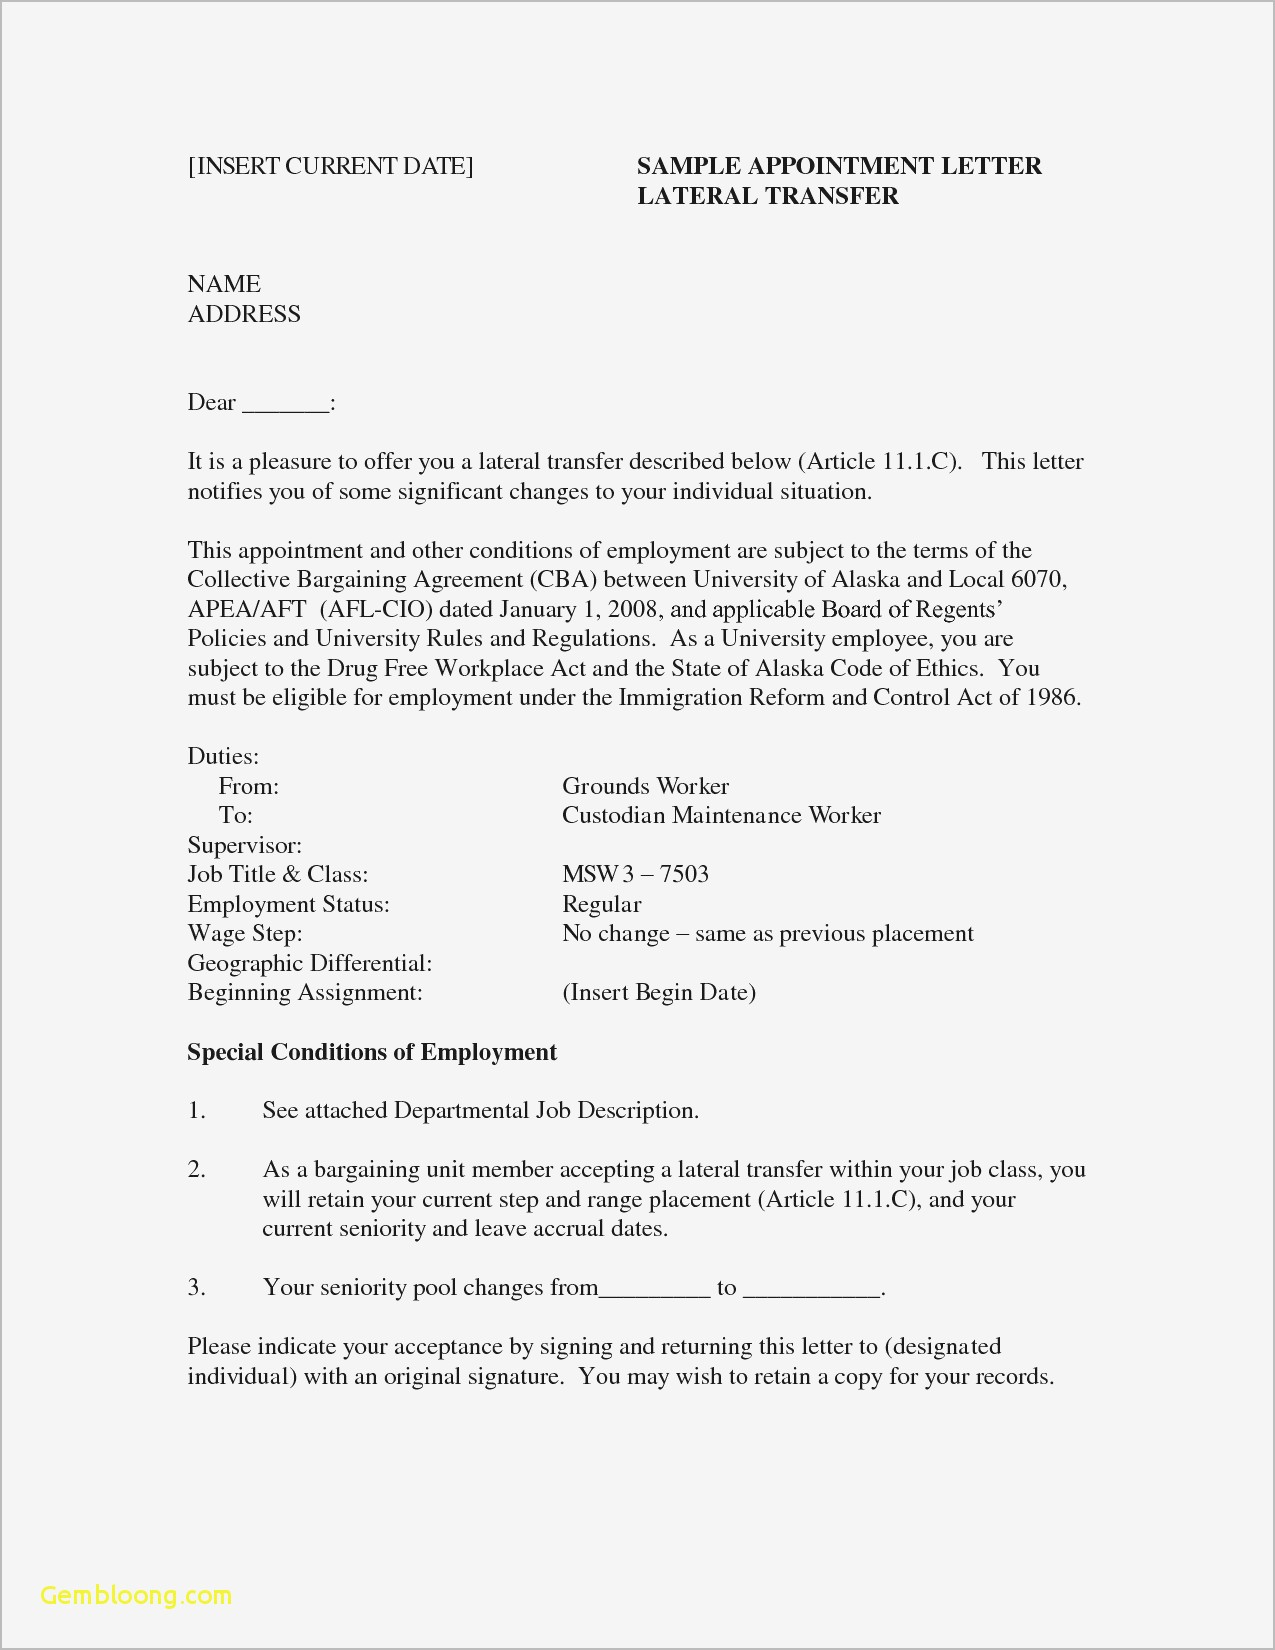 letter of employment template Collection-Cover Letter Template Word 2014 Fresh Relocation Cover Letters Od Specialist Sample Resume Portfolio 20-g